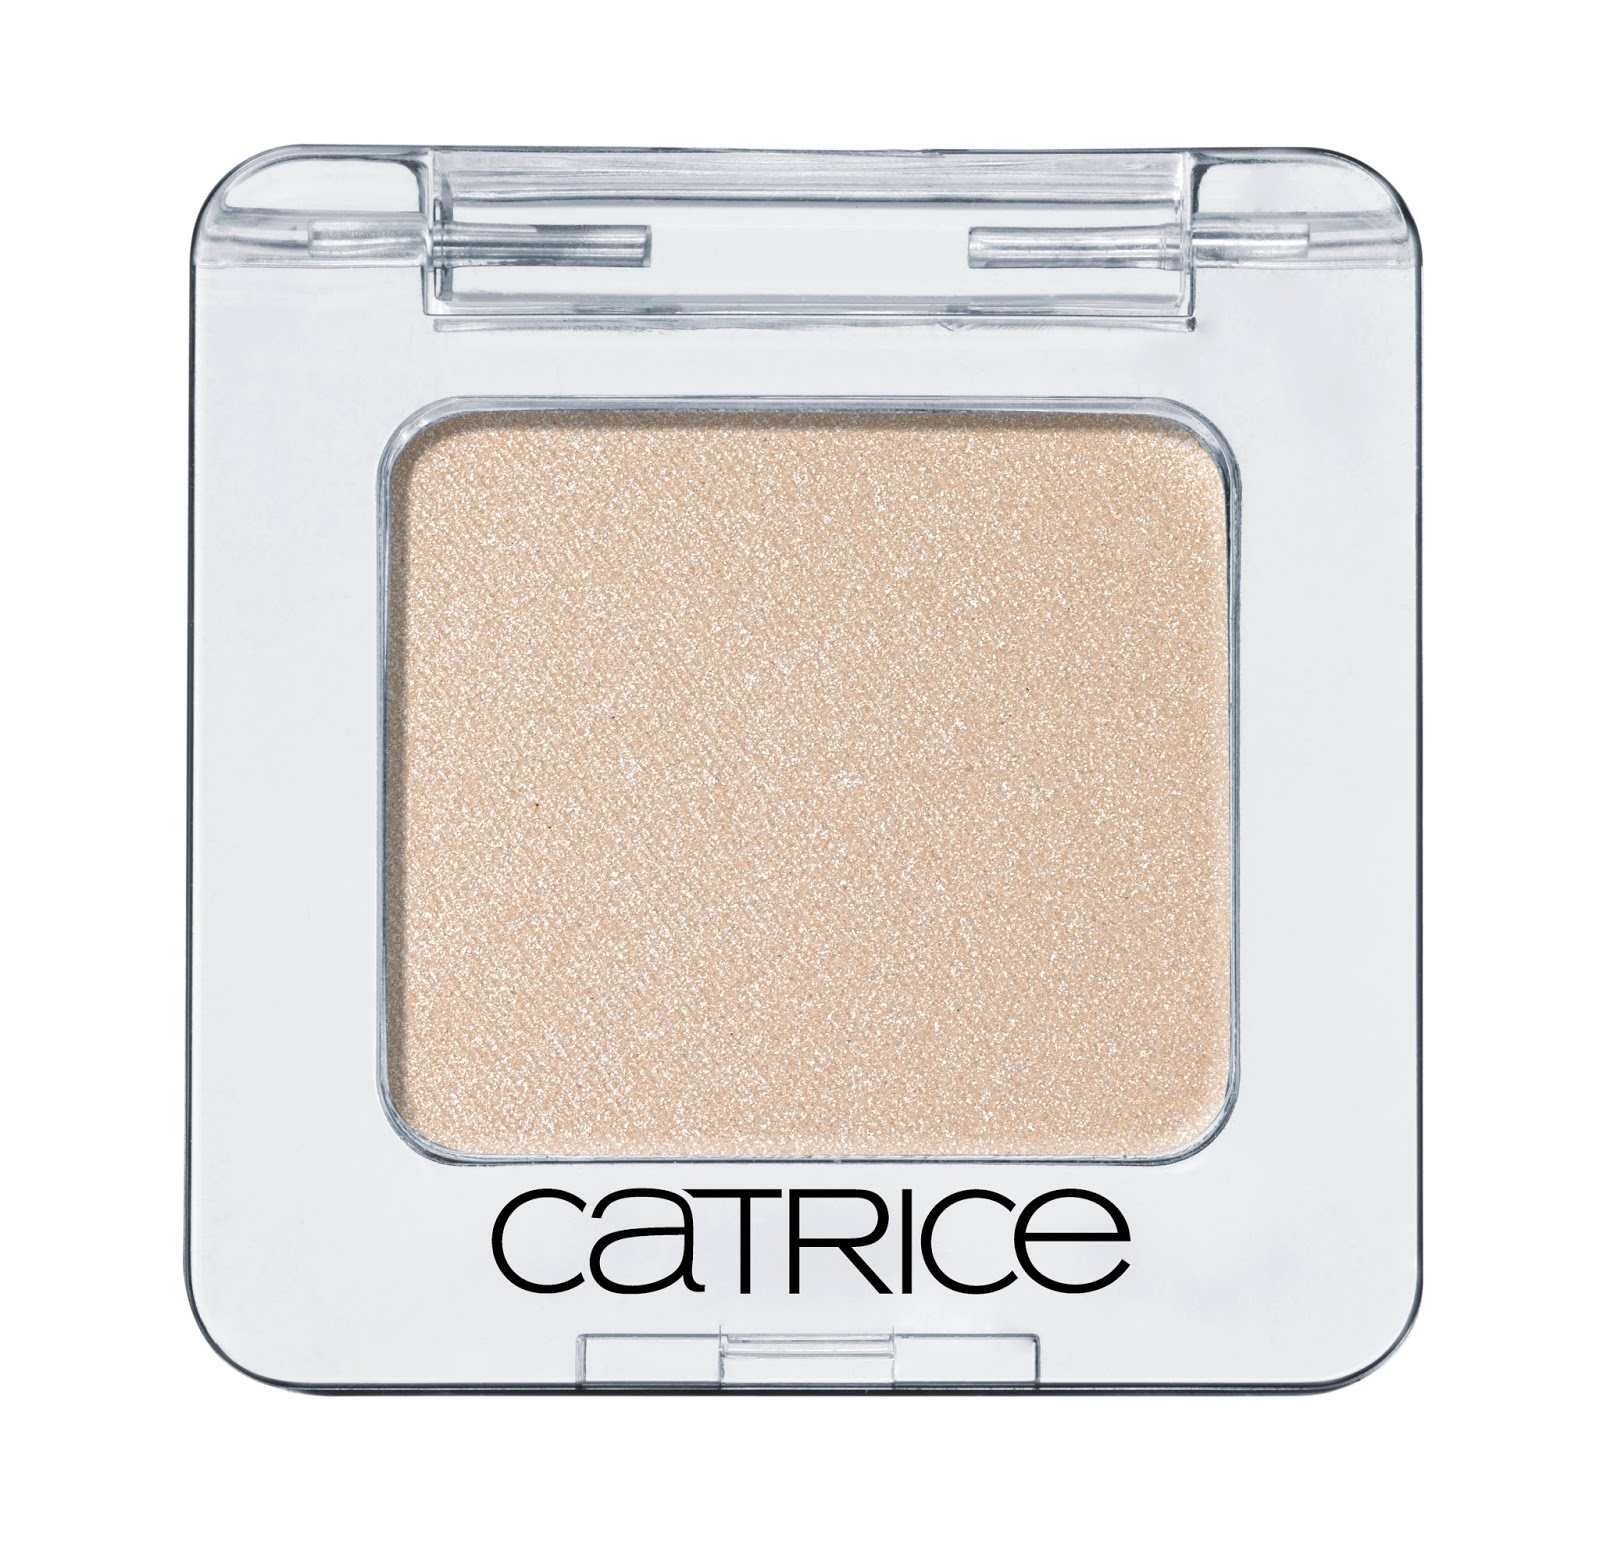 Catrice - Absolute Eye Colour Mono Eyeshadow